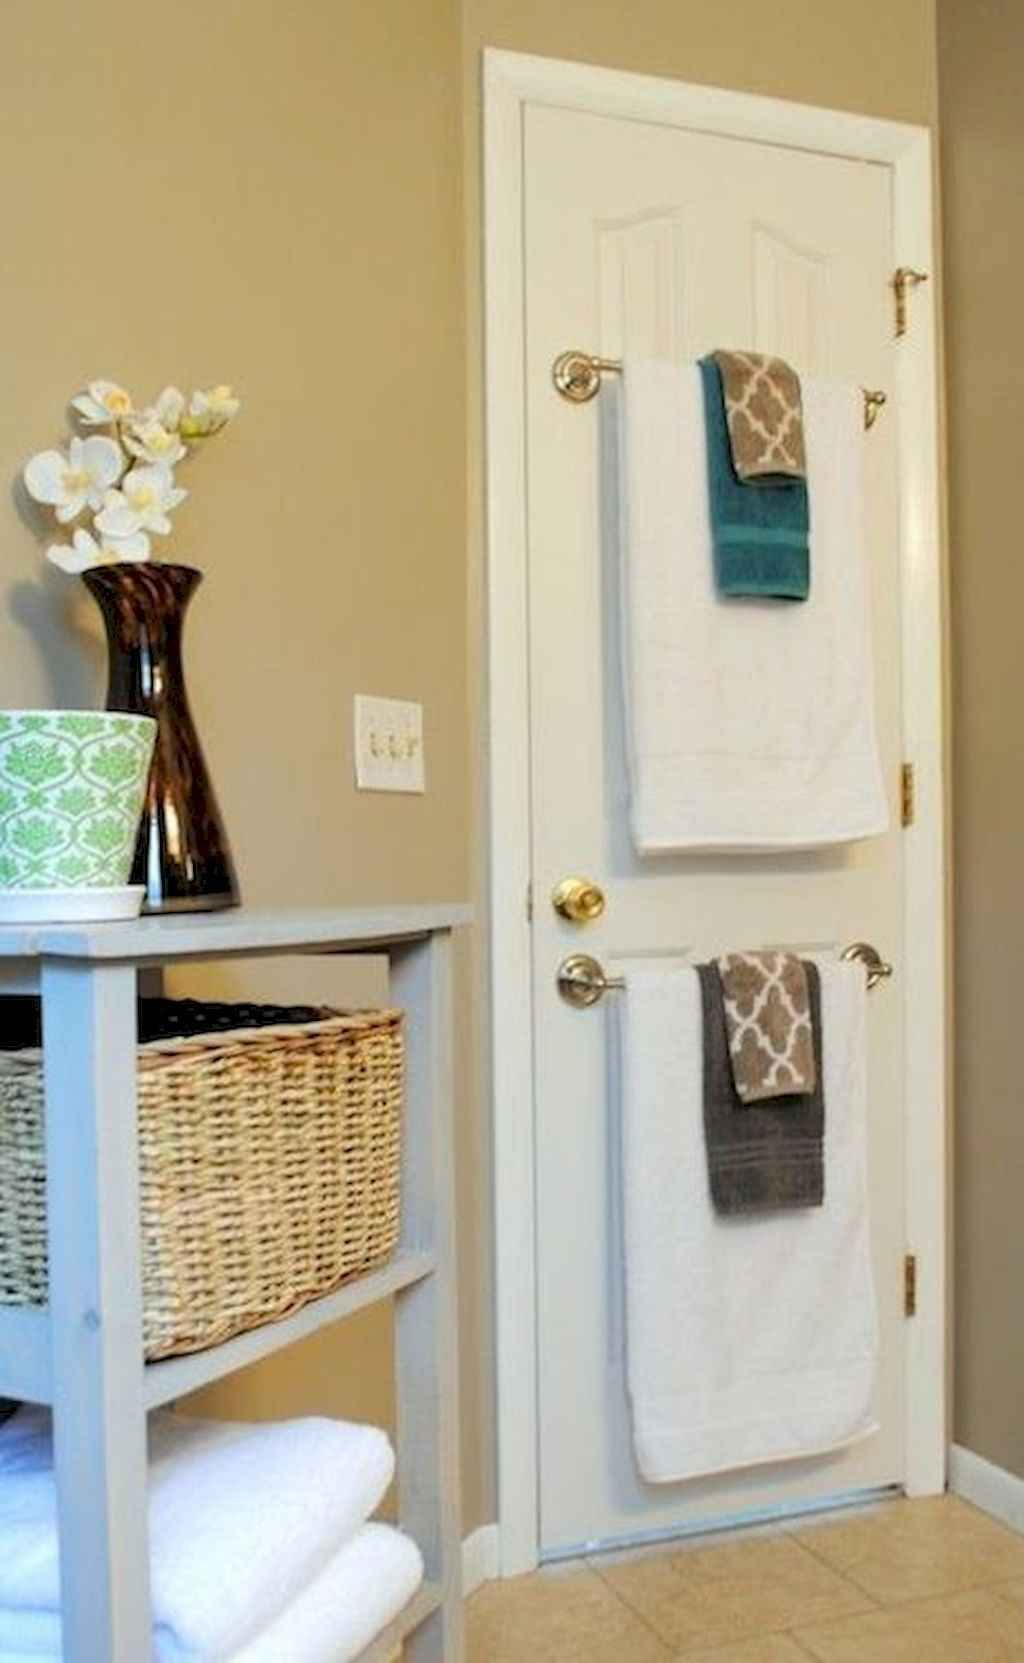 111 awesome small bathroom remodel ideas on a budget (44)